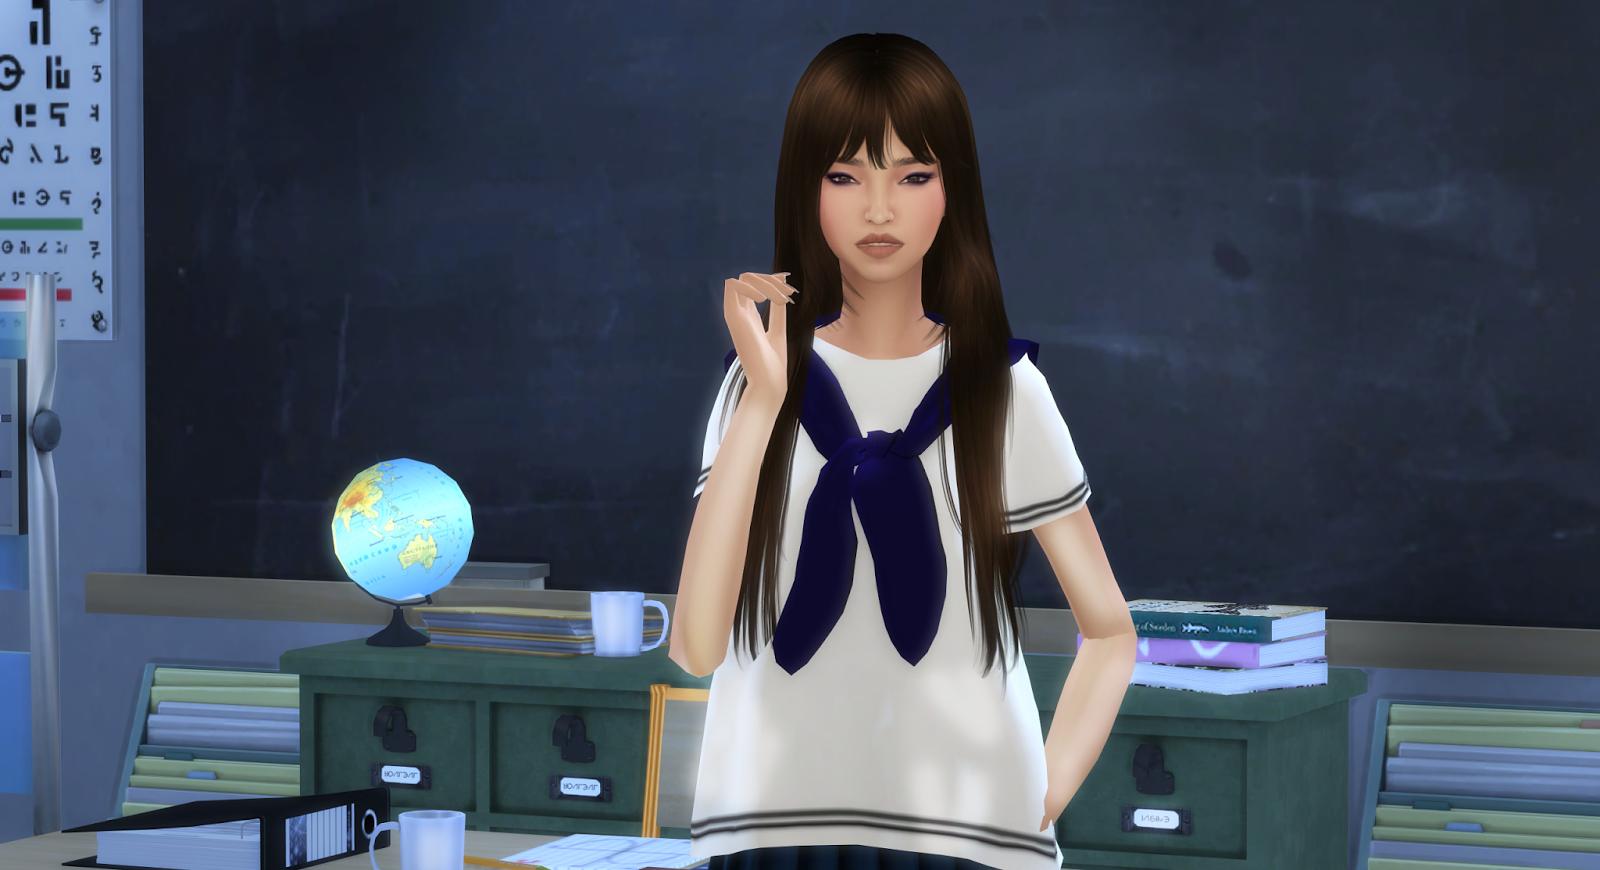 Moon Galaxy Sims The Sims 4 Korean Girl